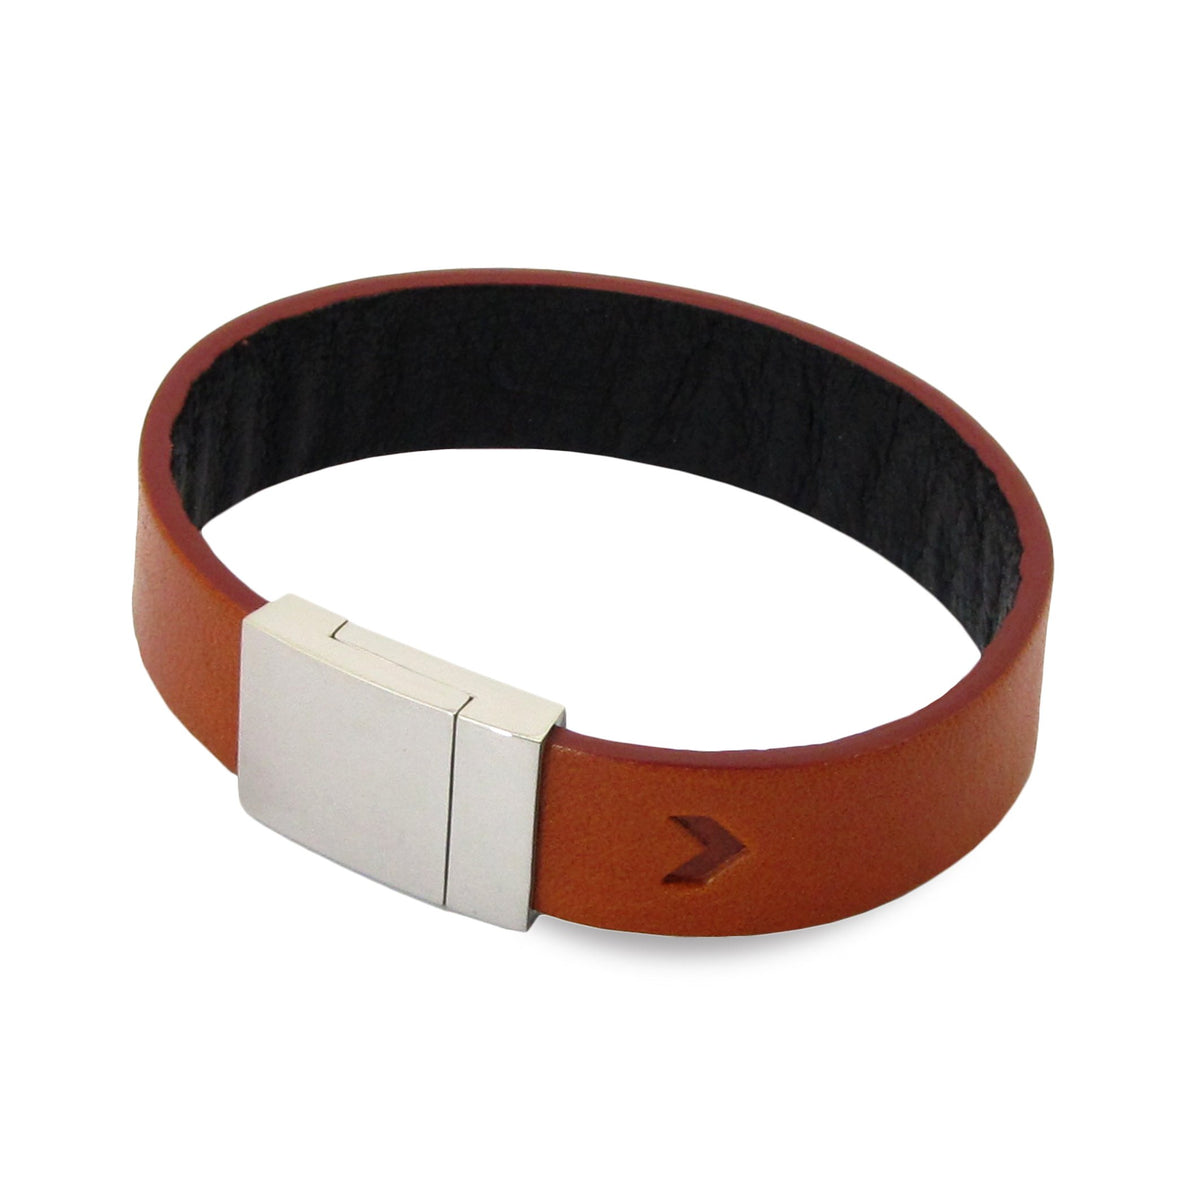 Leather Contactless Payment Bracelet: Tan on Black Contactless Payment Bracelet Tovi Sorga